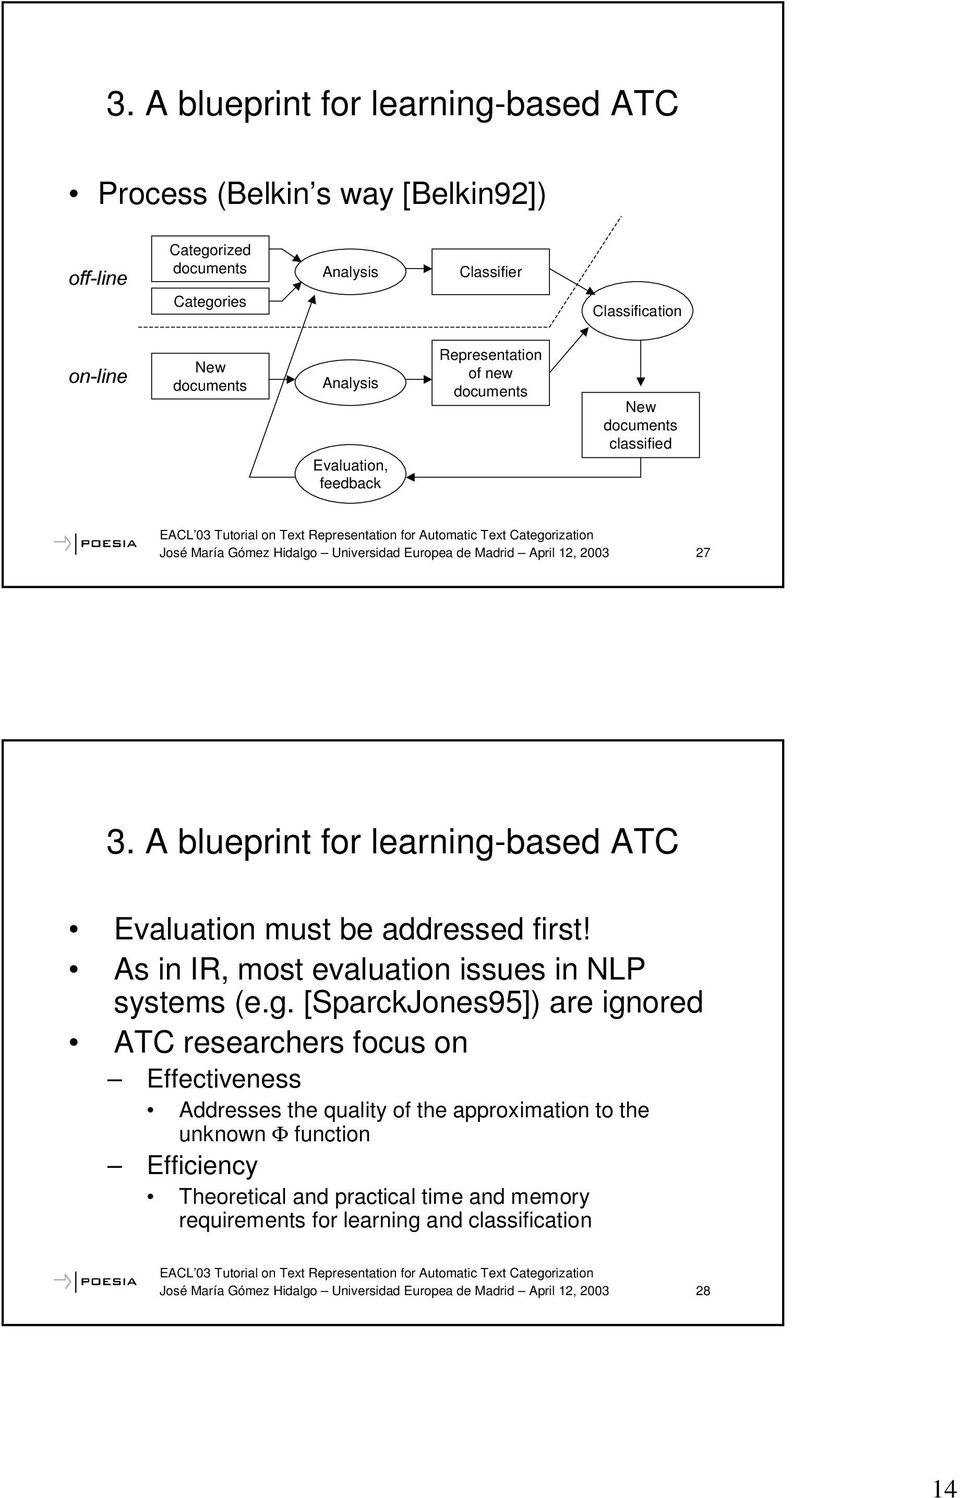 A blueprint for learning-